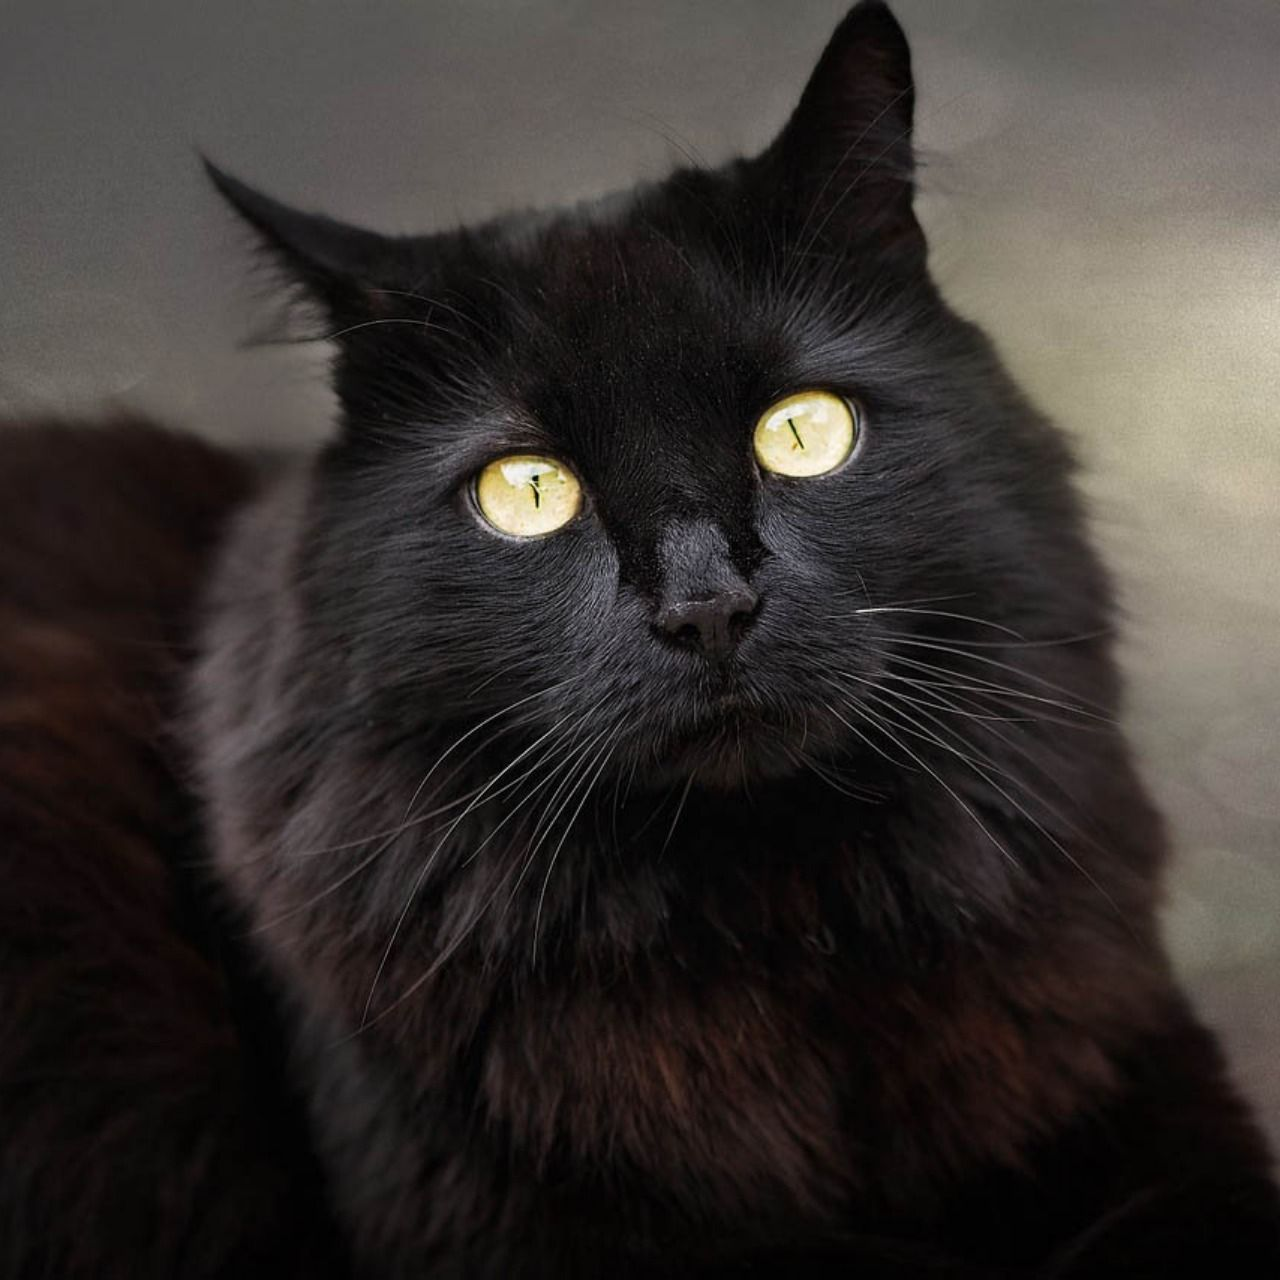 Cats with yellow eyes Cat eye colors, Cats, Black cat